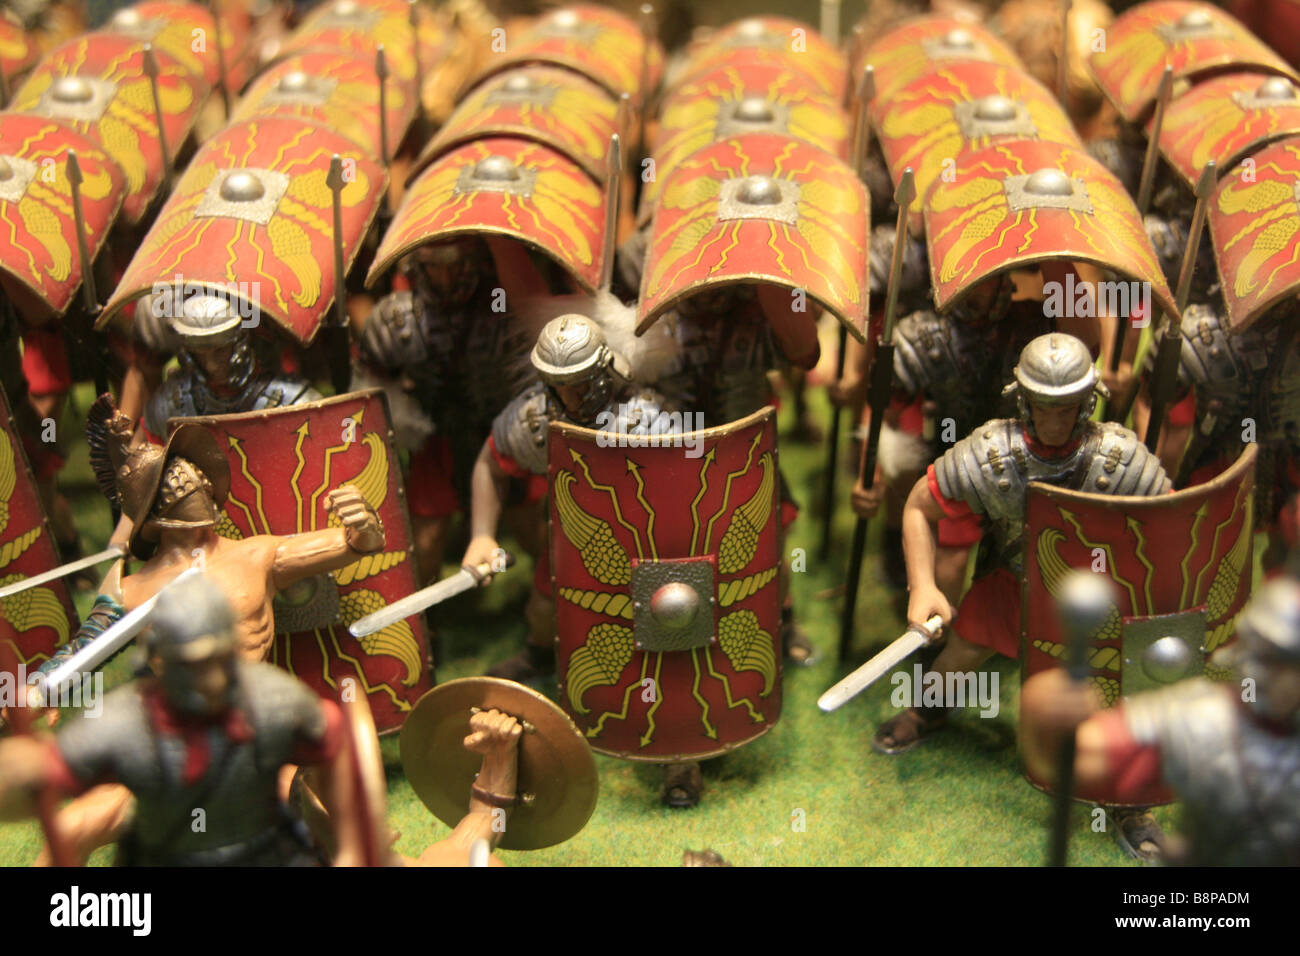 Toy-toys Shop Small Model Roman Soldiers In Battle Attack Formation In